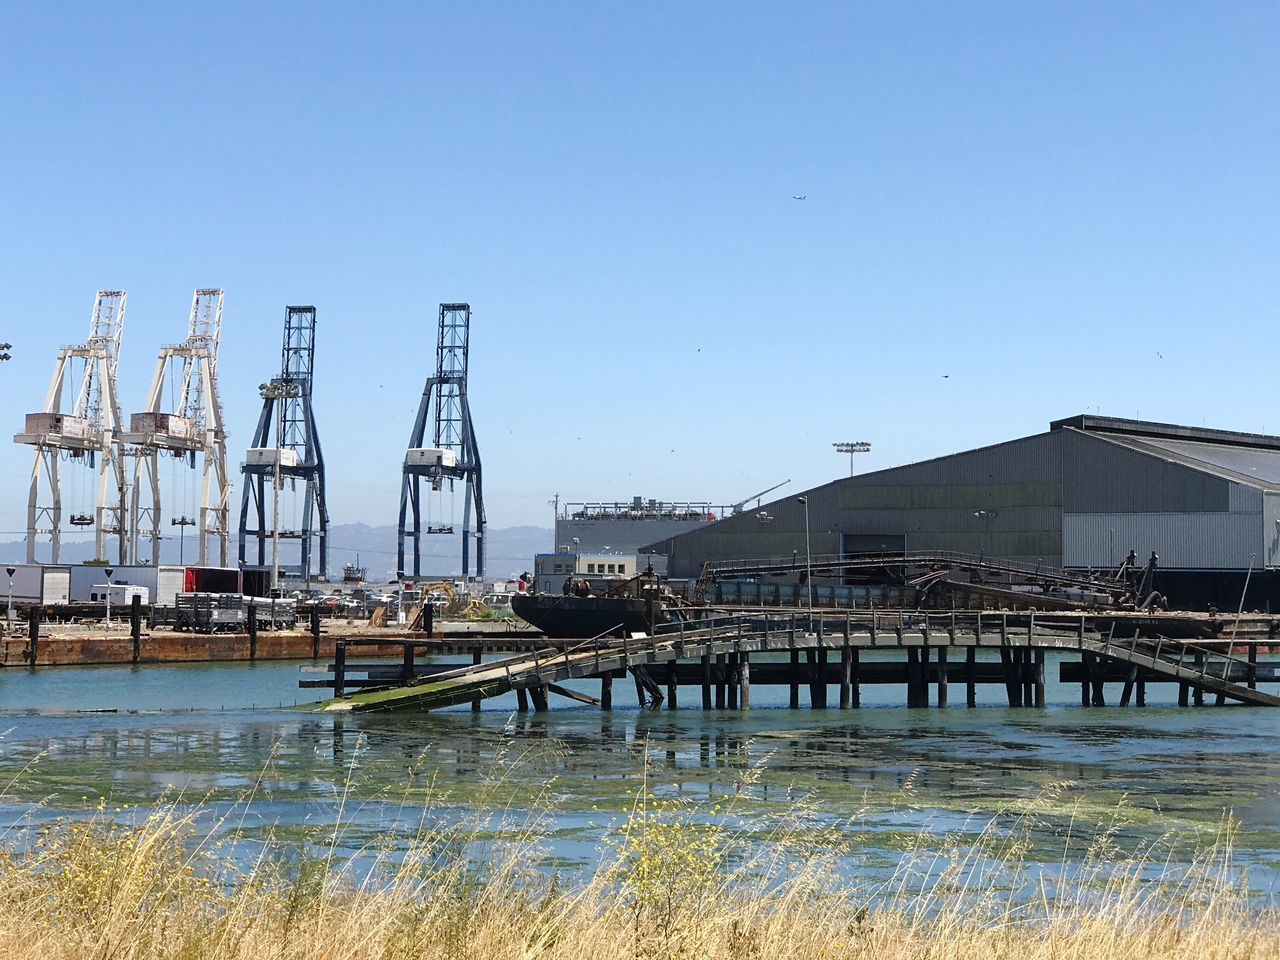 Built Structure Architecture Water Clear Sky Day Outdoors Building Exterior No People River Bridge - Man Made Structure Nature Harbor Nautical Vessel Sky Gantry Cranes Herons Head Park